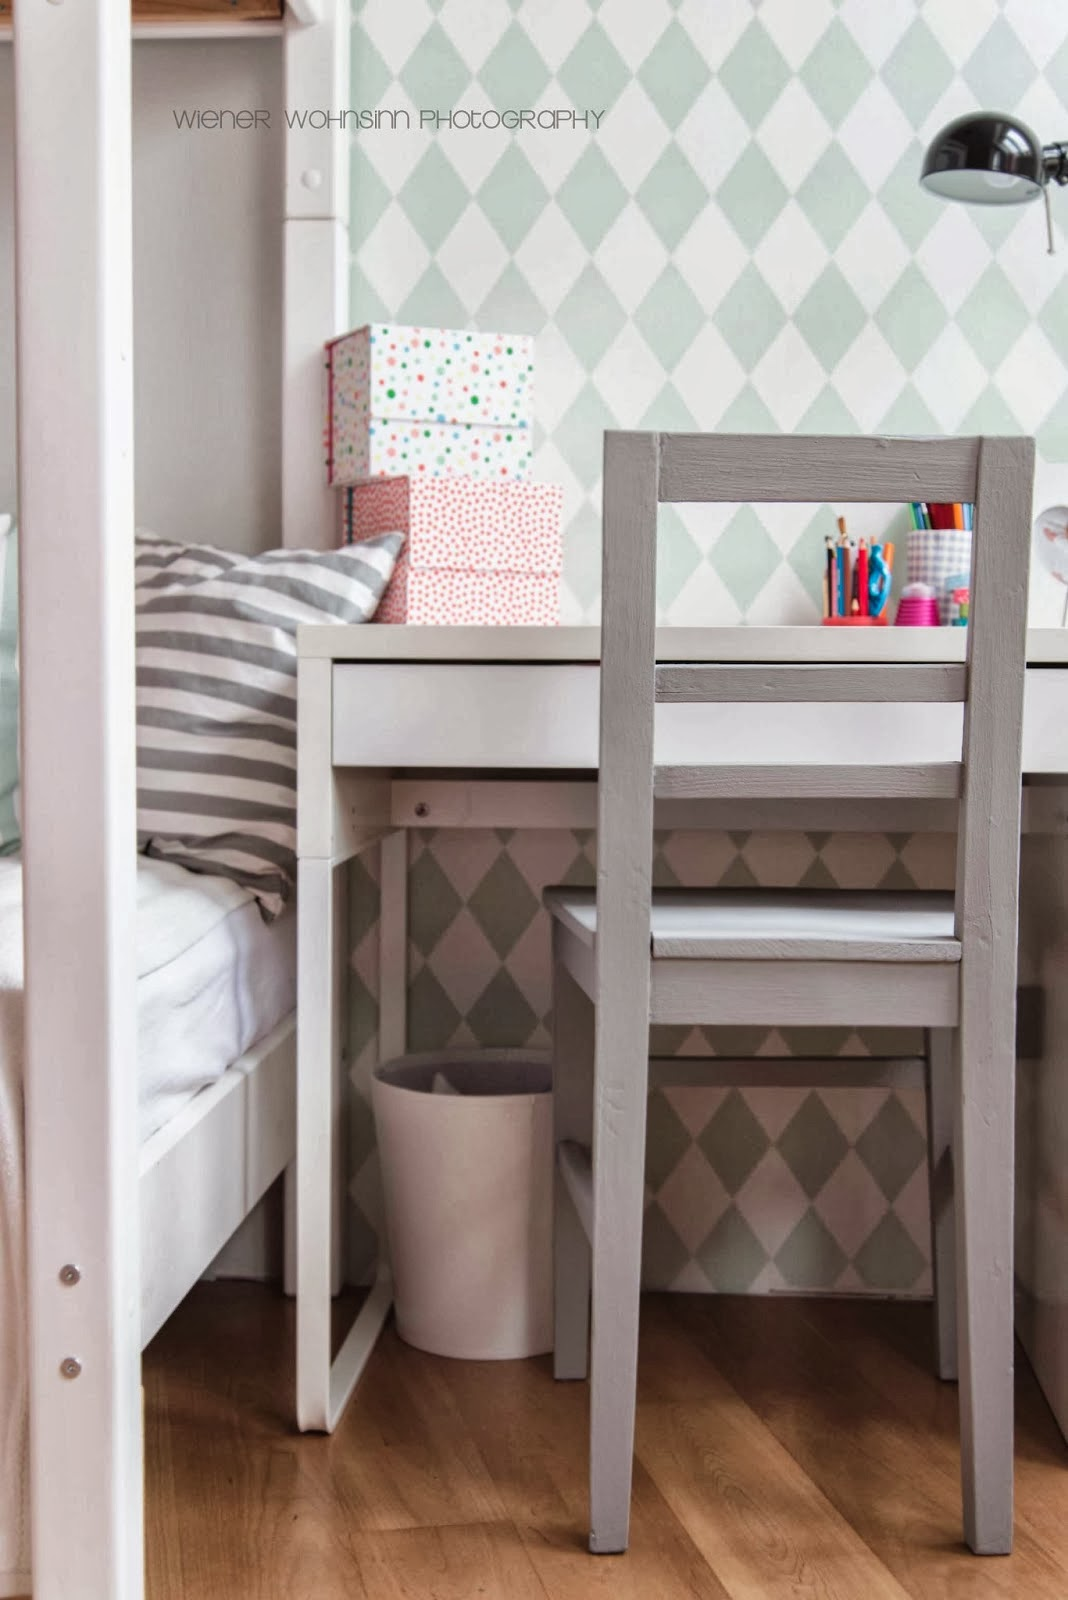 Frauschmittblog: kinderzimmer   ideen / kids' room ideas